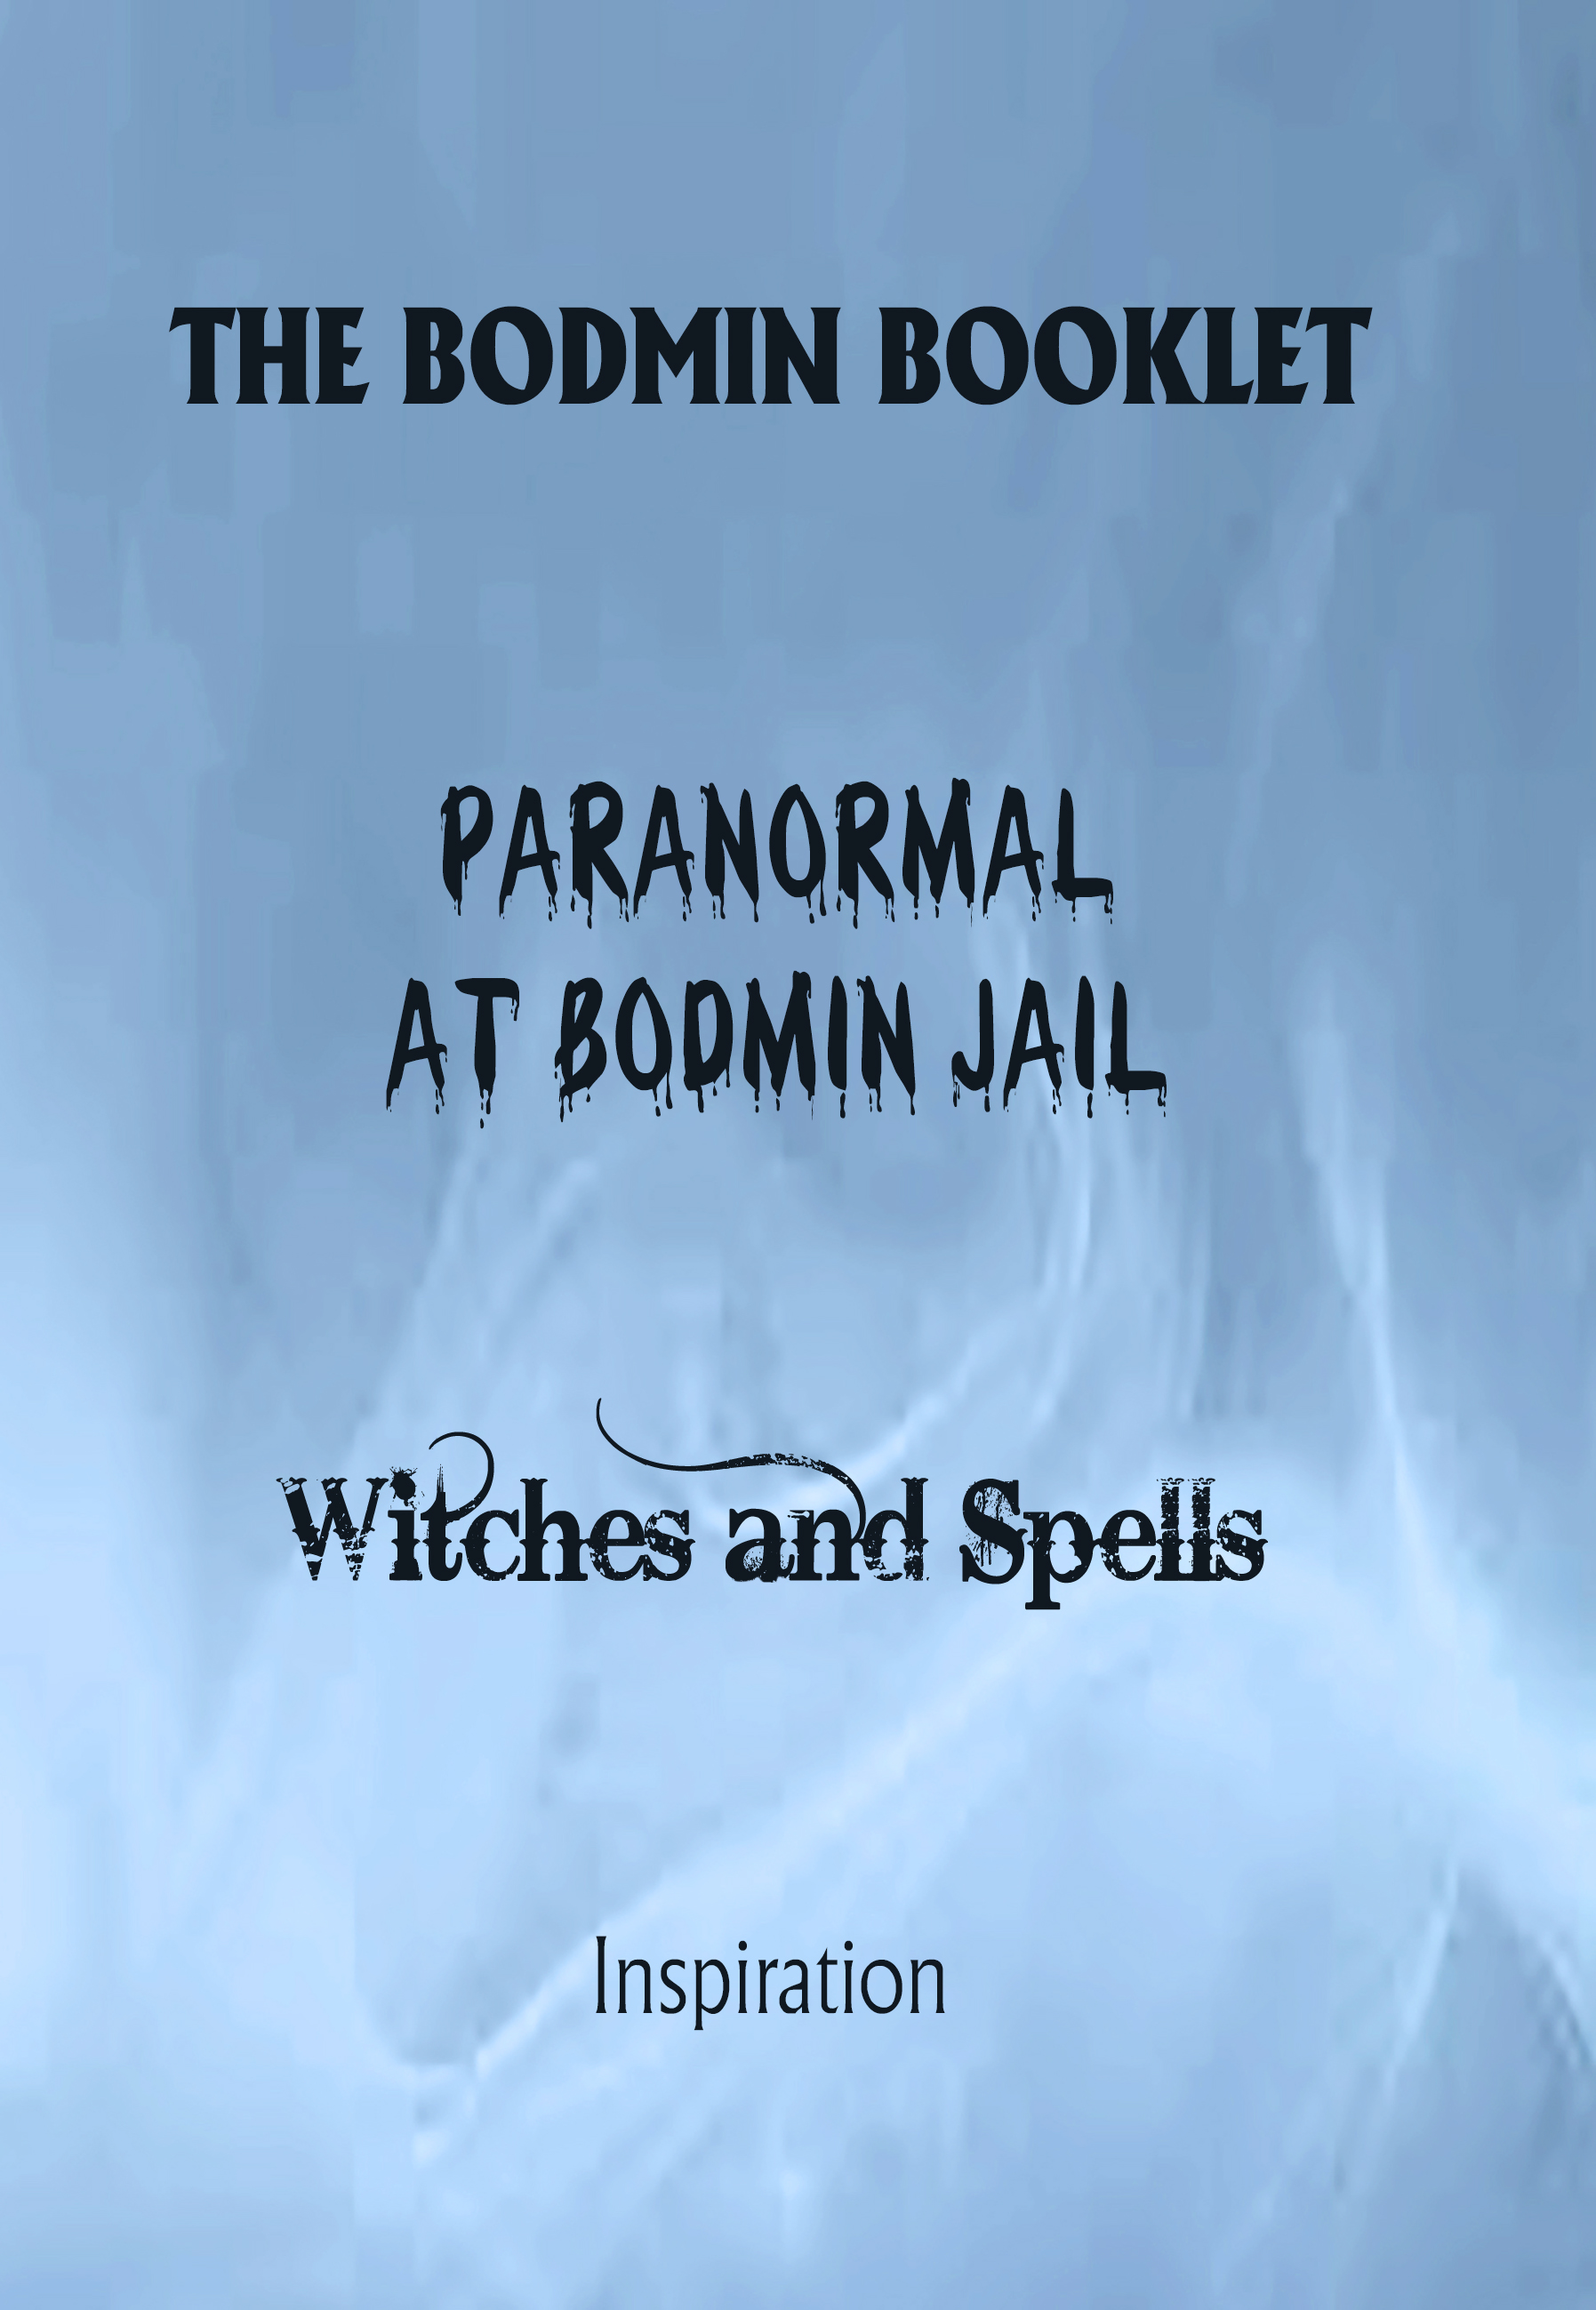 The Bodmin Booklet